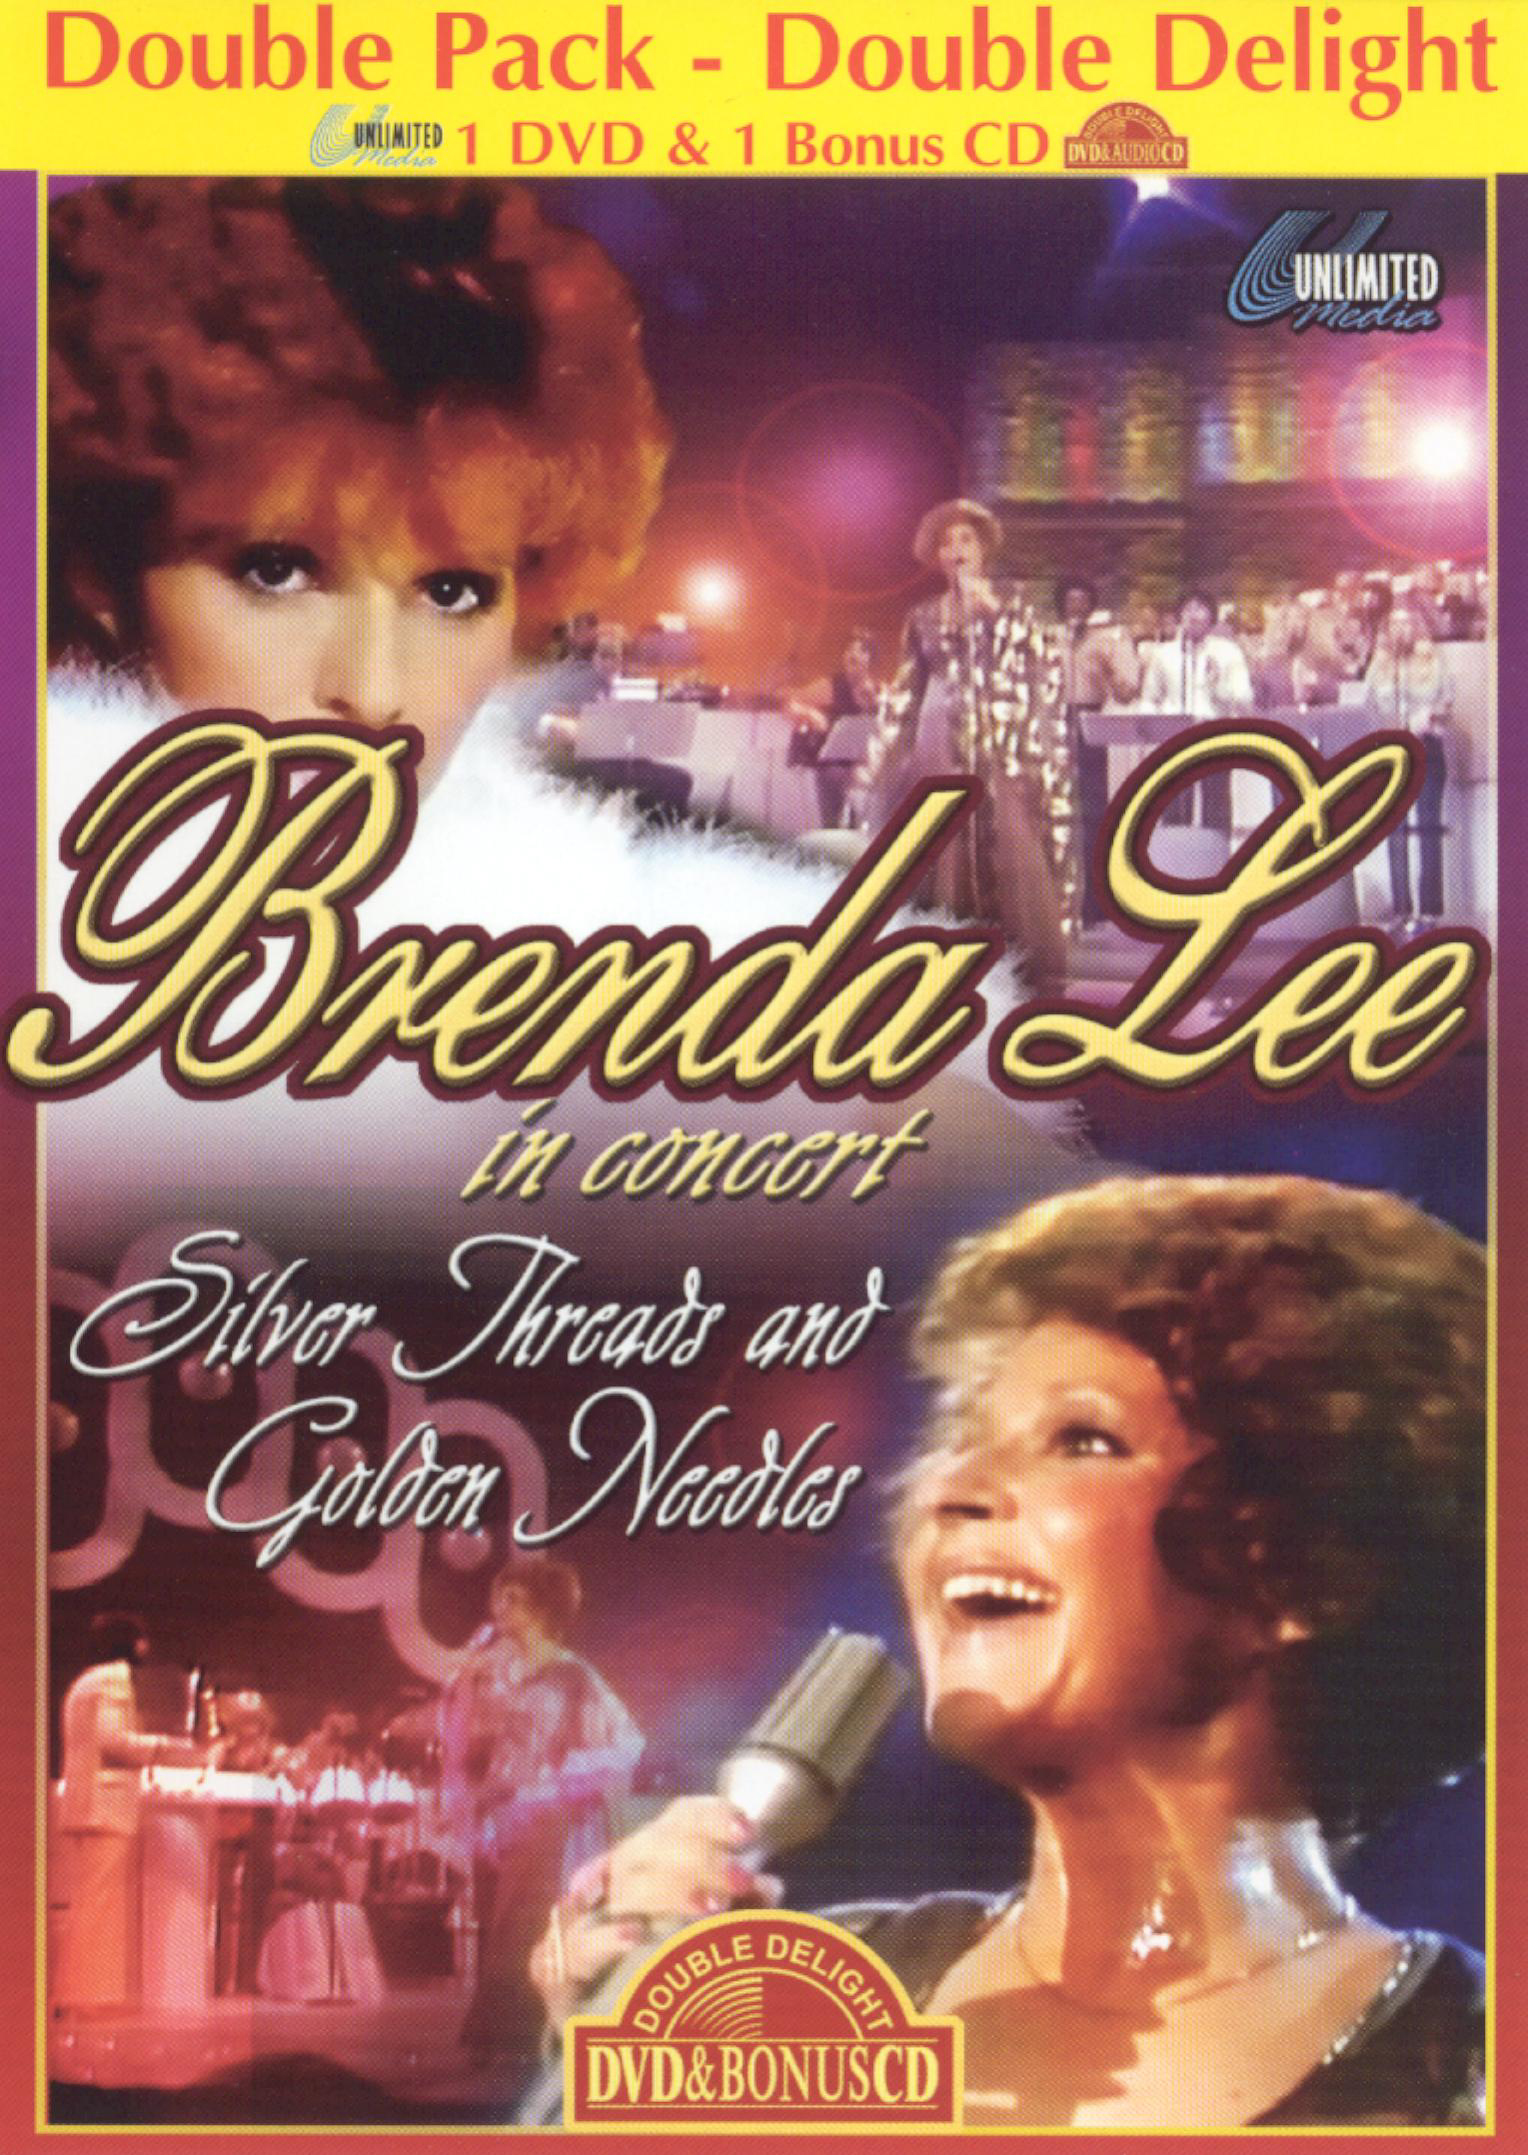 Brenda Lee: Silver Threads & Golden Needles - In Concert